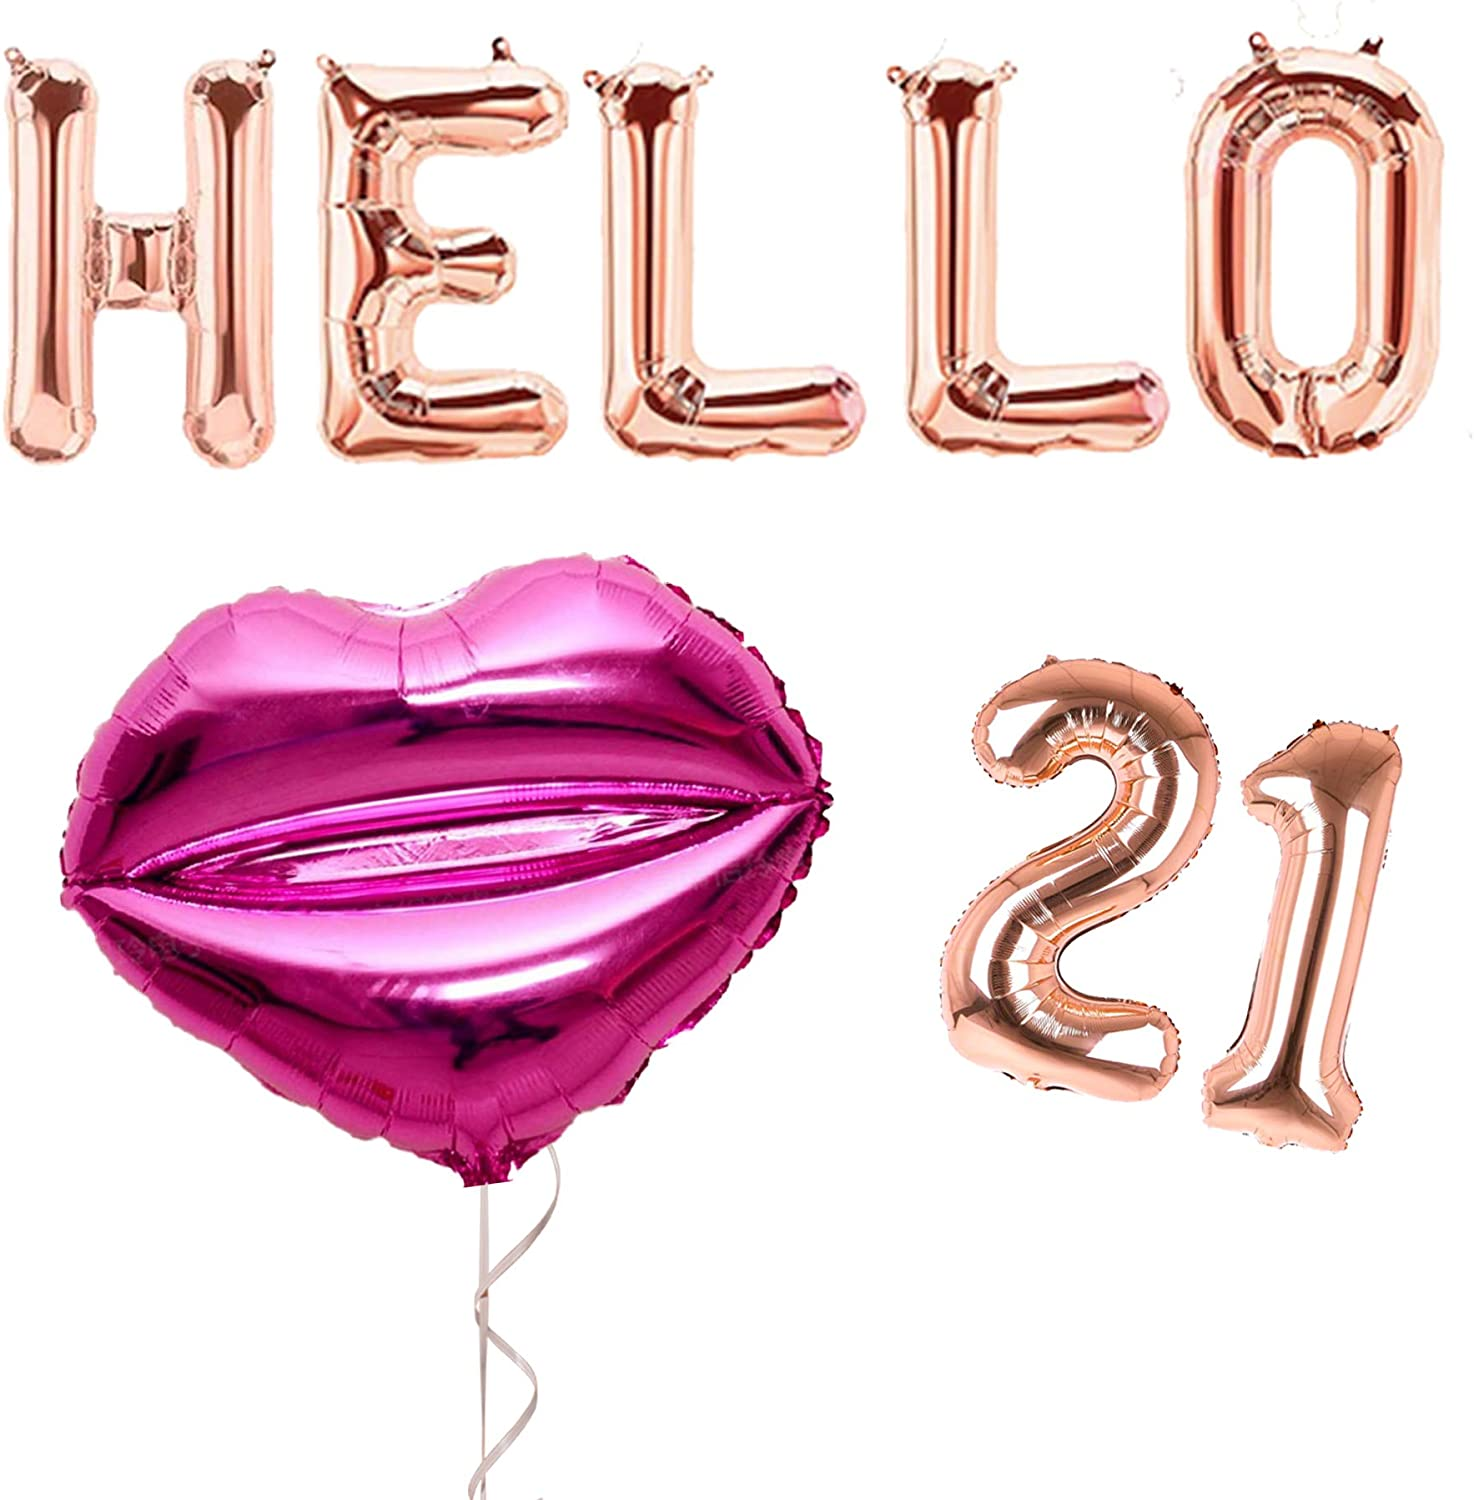 Hello 21 Birthday Decorations Rose Gold for Her | Mylar Foil Number & Letter Balloons Banner + Lips Set | Perfect Photo Booth Props or Backdrop for Womens 21st Legal AF Bday Celebration (Hello 21)